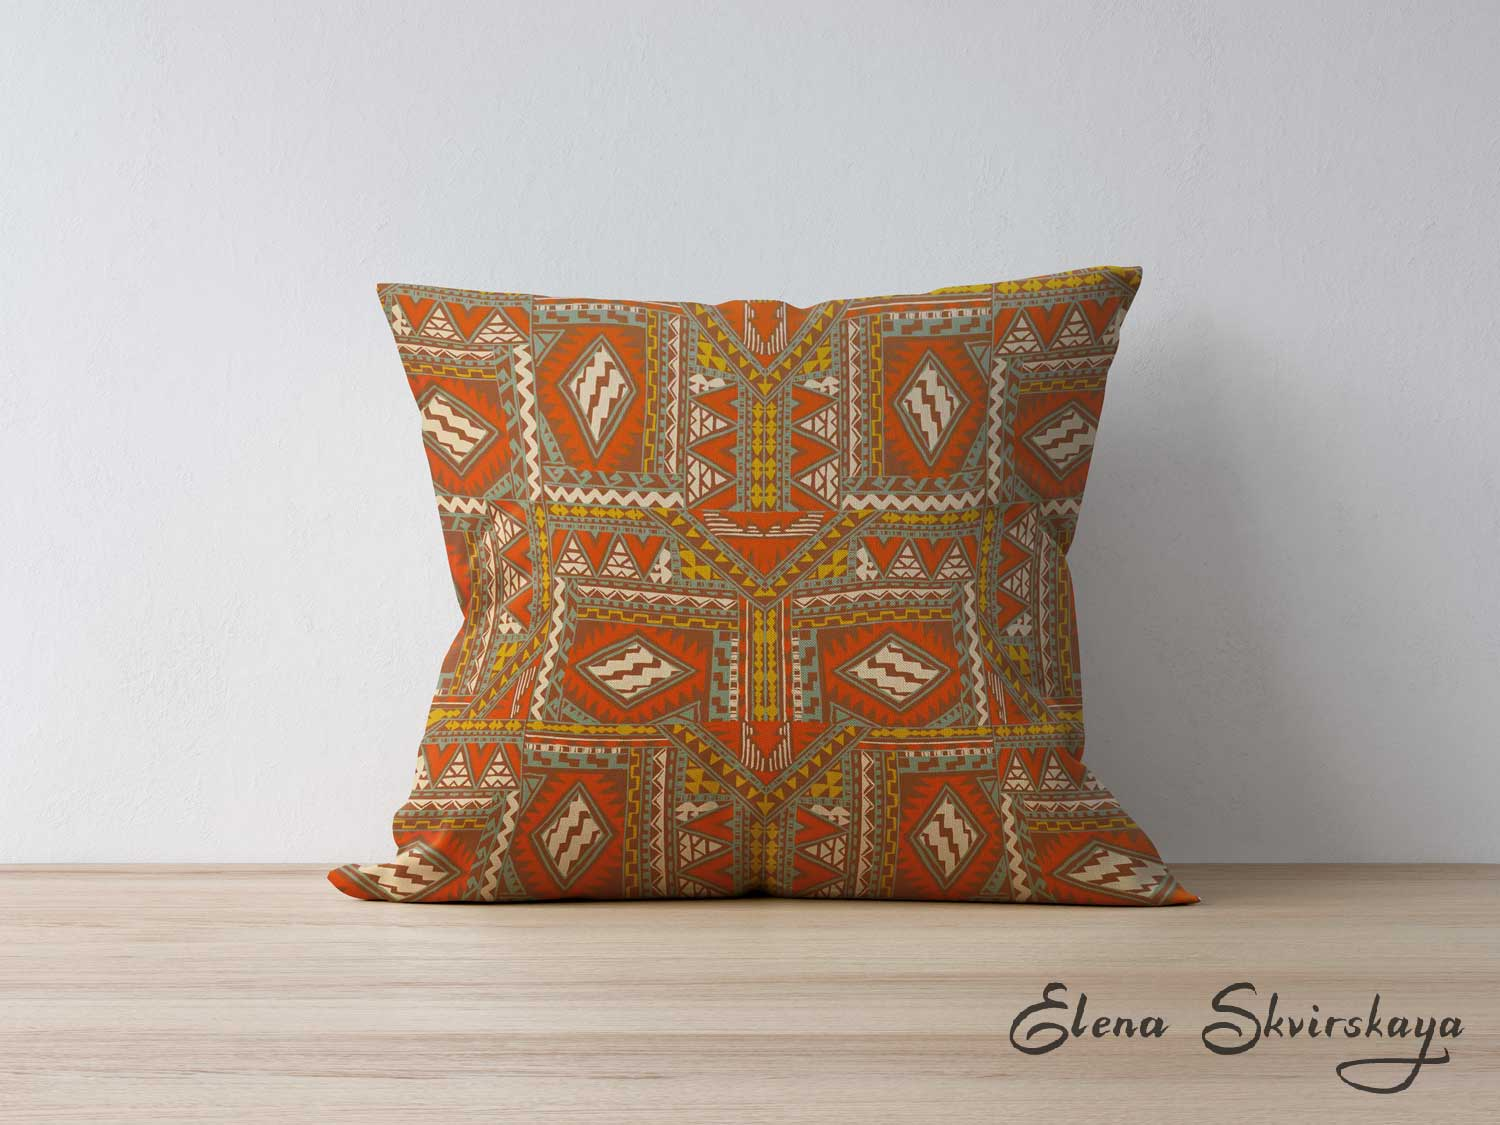 Global inspired textile design on a cushion, mock up, interior decoration